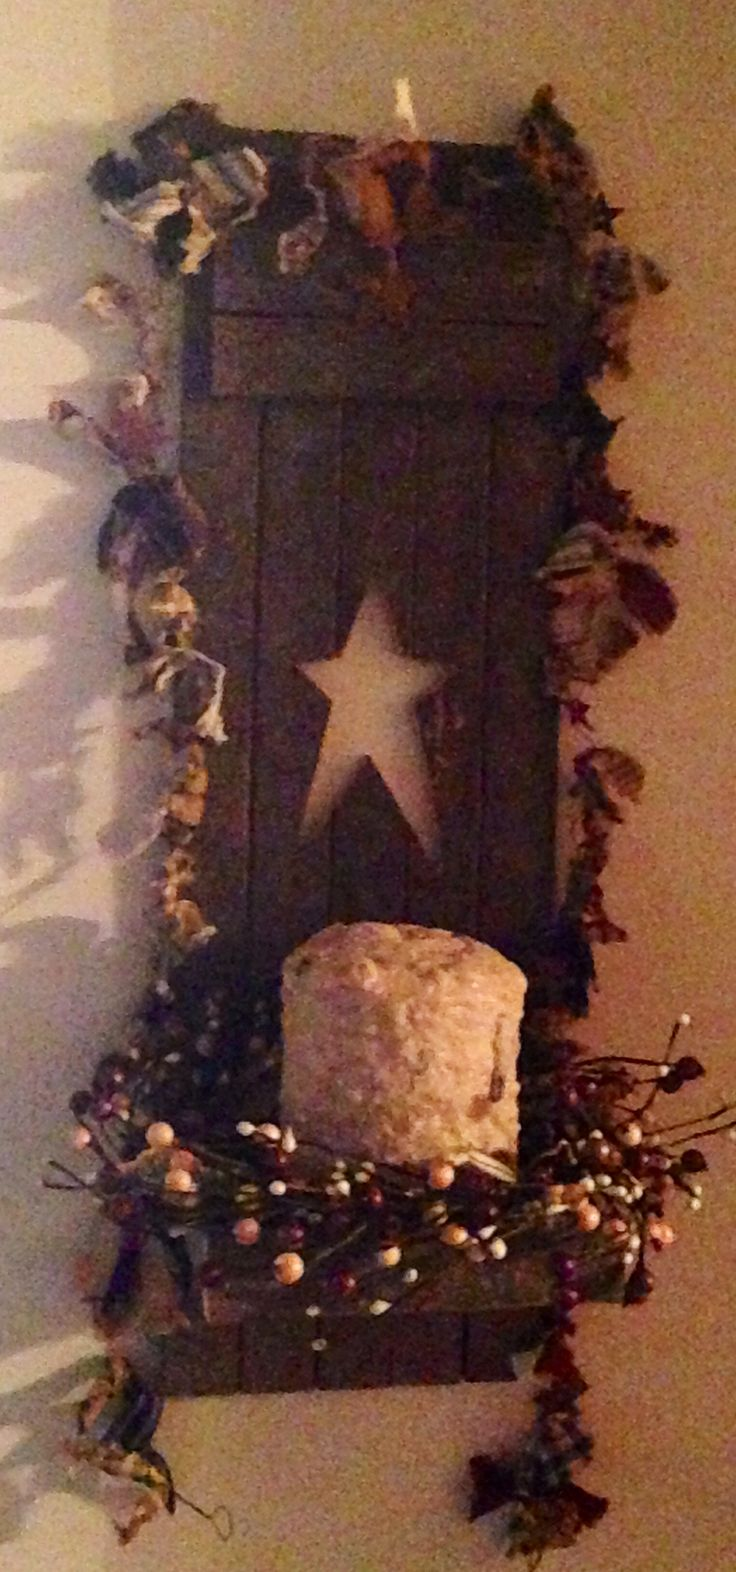 Wooden candle holders crafts - Barn Wood Candle Holder With Pip Berry Ring Rusty Star And Rag Garland